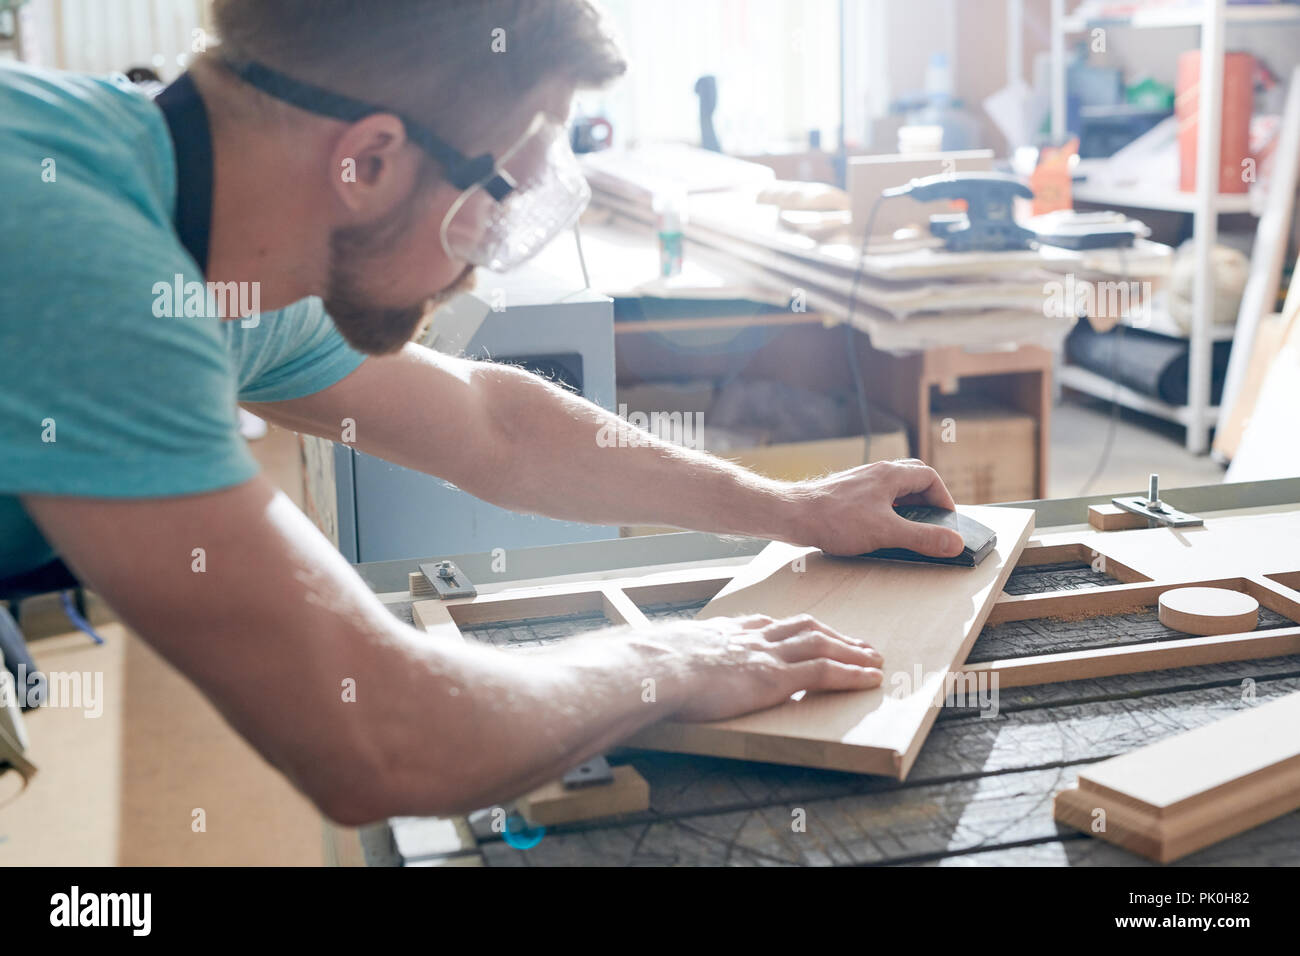 Carpenter at work - Stock Image